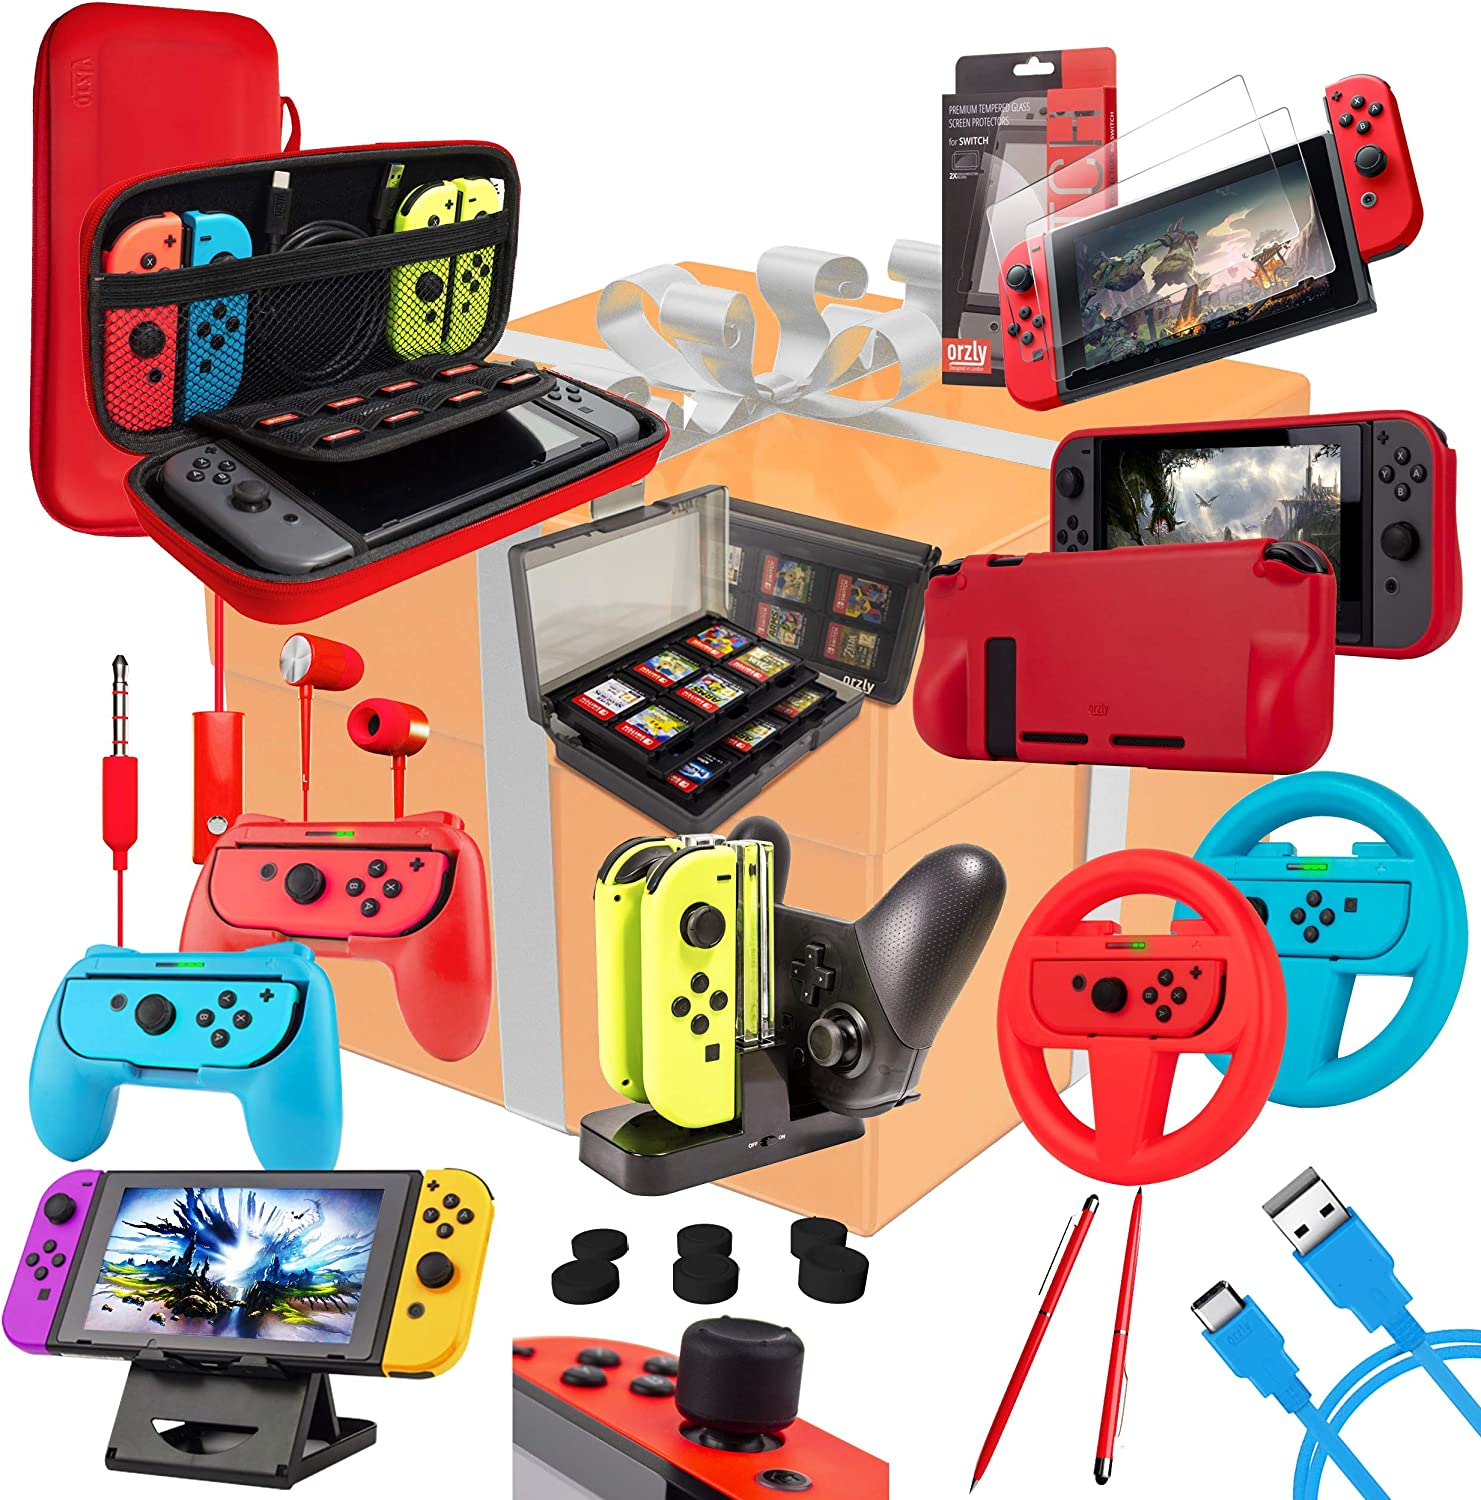 A bundle with the most common Switch accessories, like a grip,stand,case,screen protector,etc.